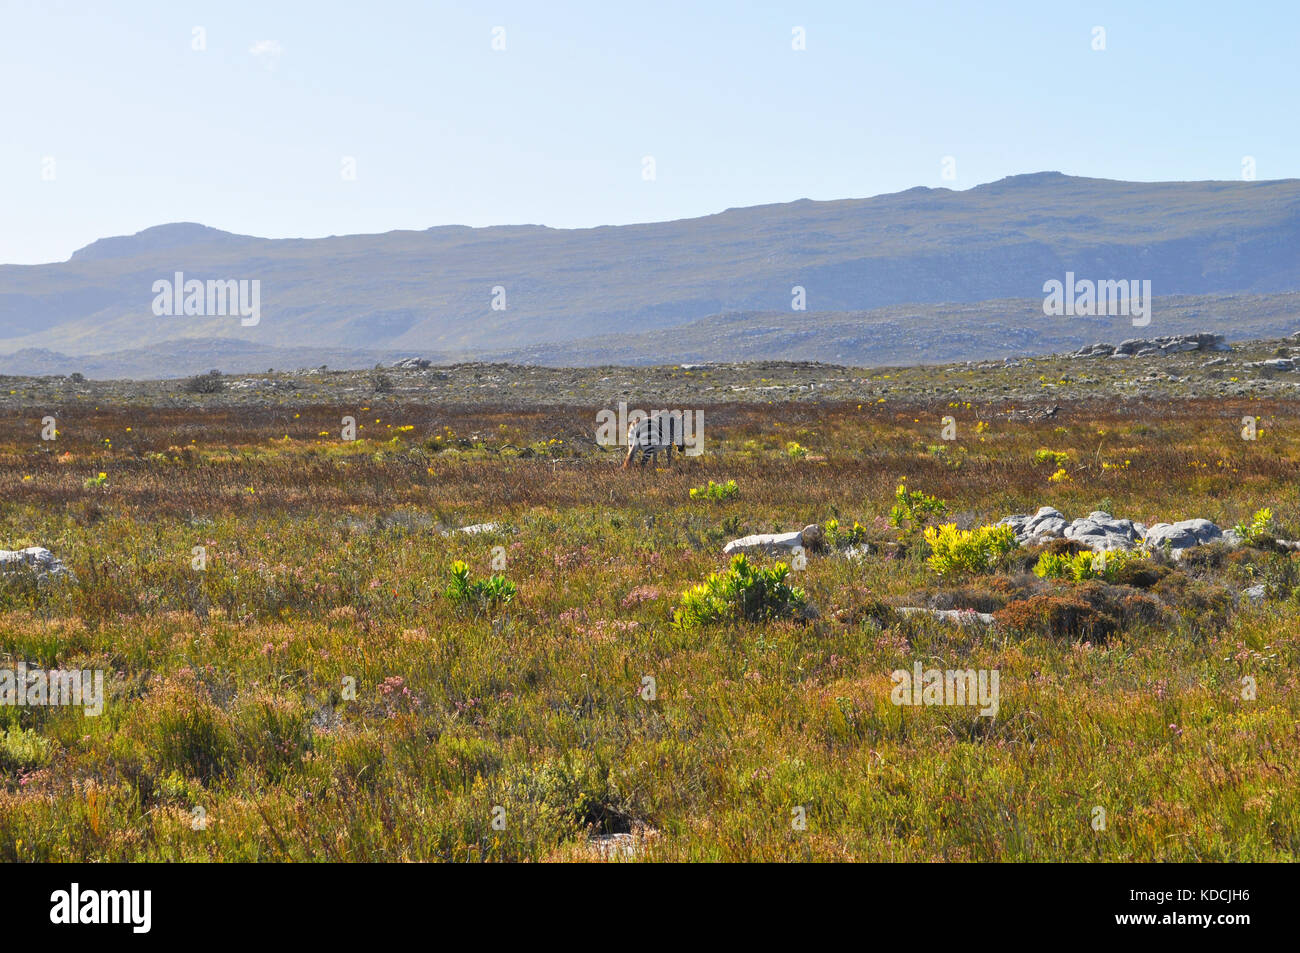 Fynbos Vegetation and wild zebra on the Cape Peninsula, near Cape Town, South Africa Stock Photo